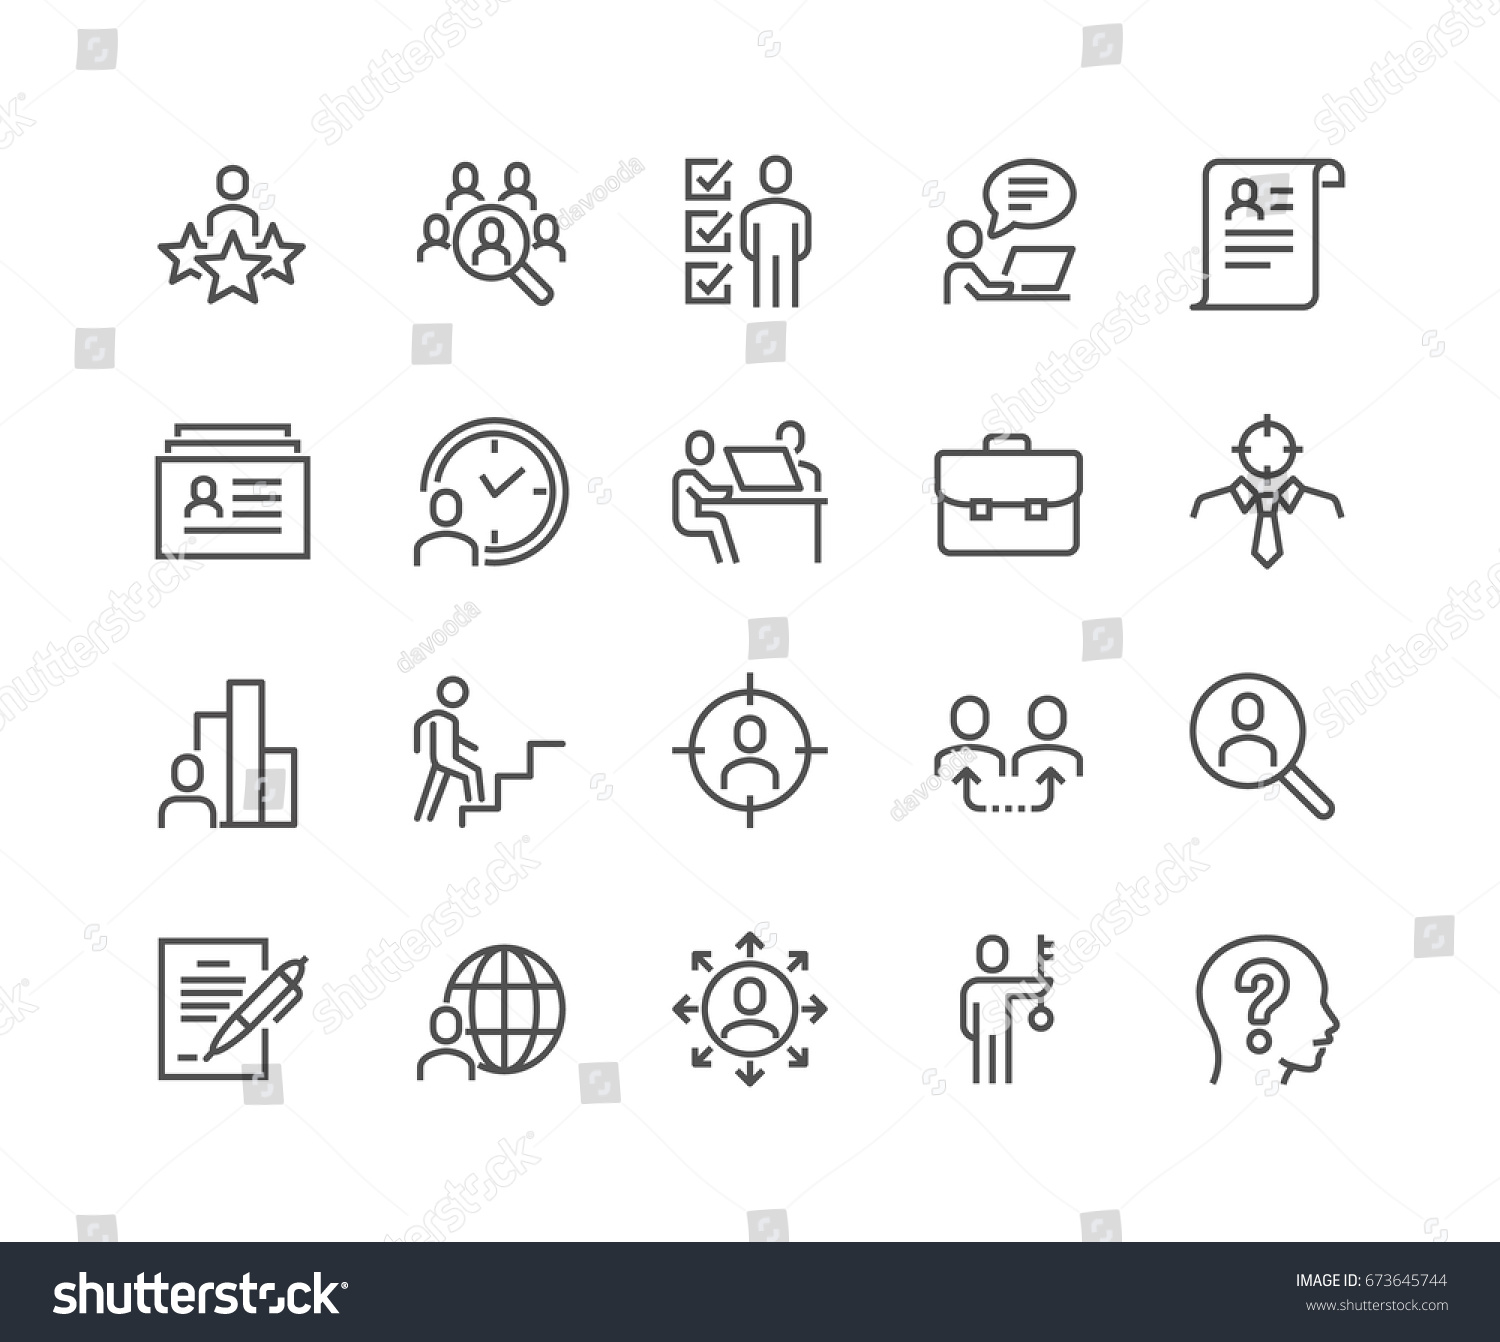 Simple Set of Head Hunting Related Vector Line Icons.  Contains such Icons as Job Interview, Career Path, Resume and more. Editable Stroke. 48x48 Pixel Perfect. #673645744